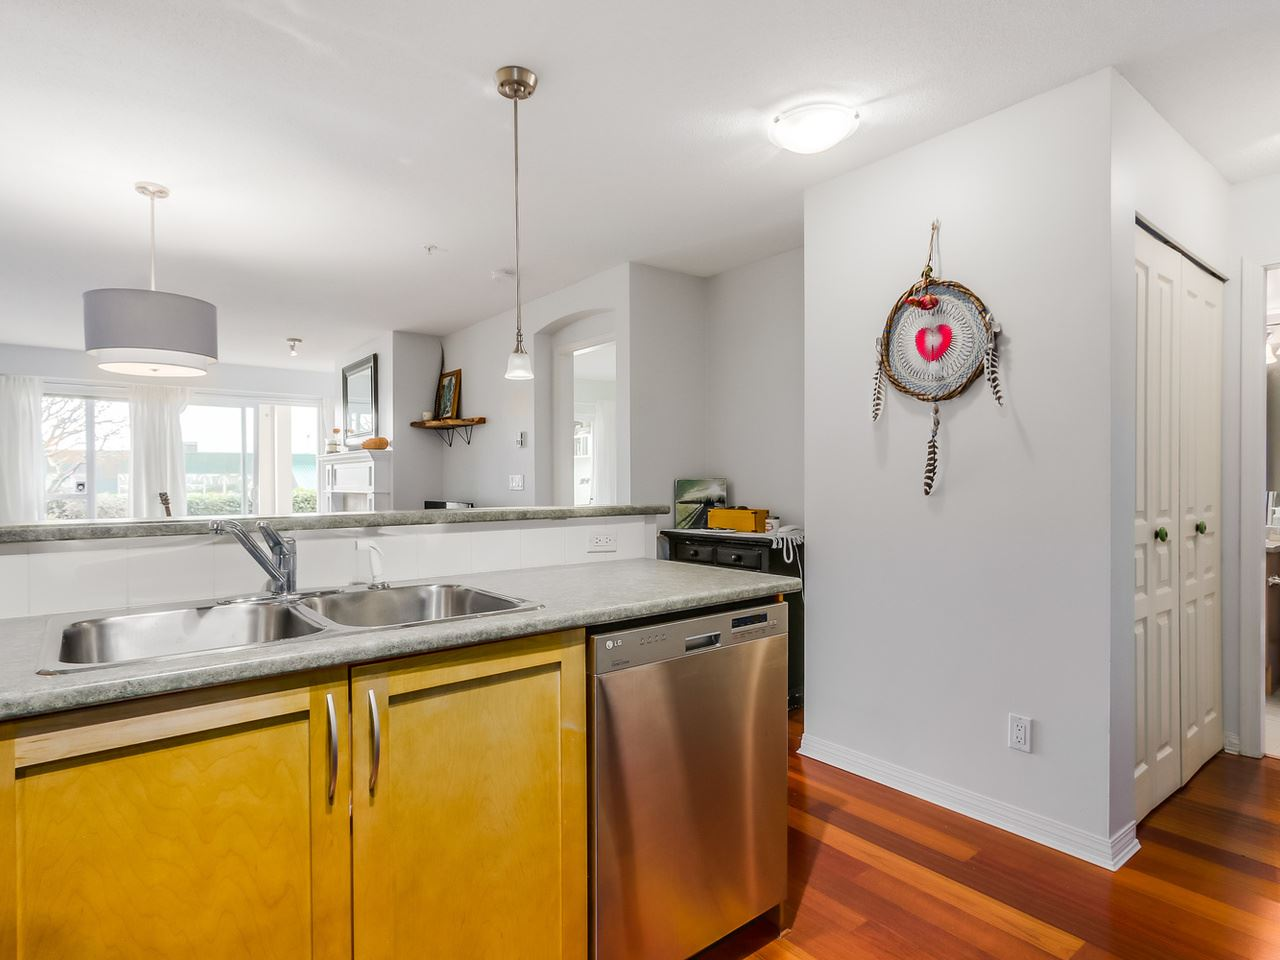 Photo 12: 109 333 E 1ST STREET in North Vancouver: Lower Lonsdale Condo for sale : MLS® # R2032321